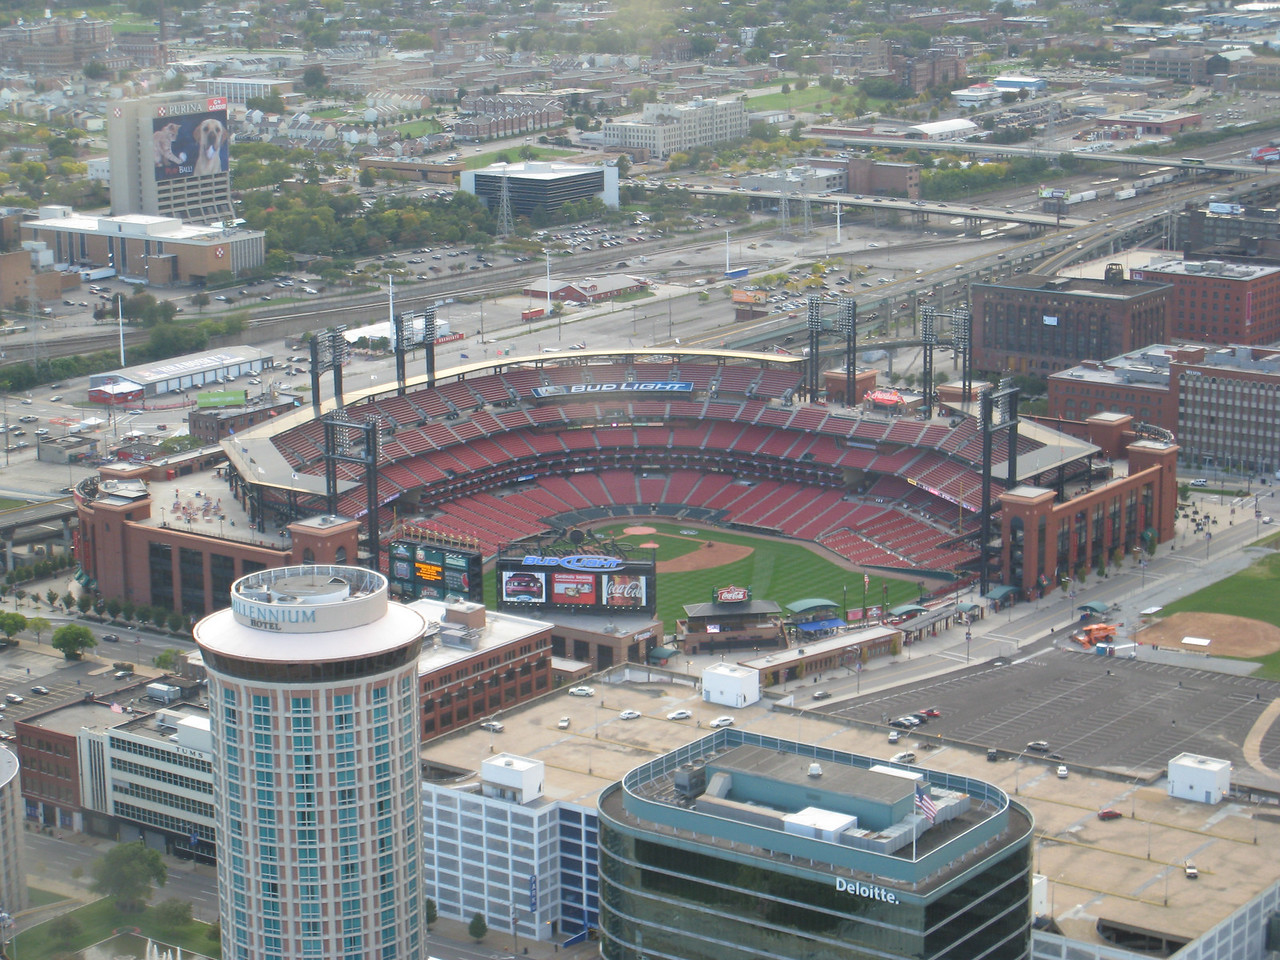 View of the Cardinals baseball field from the top of the arch